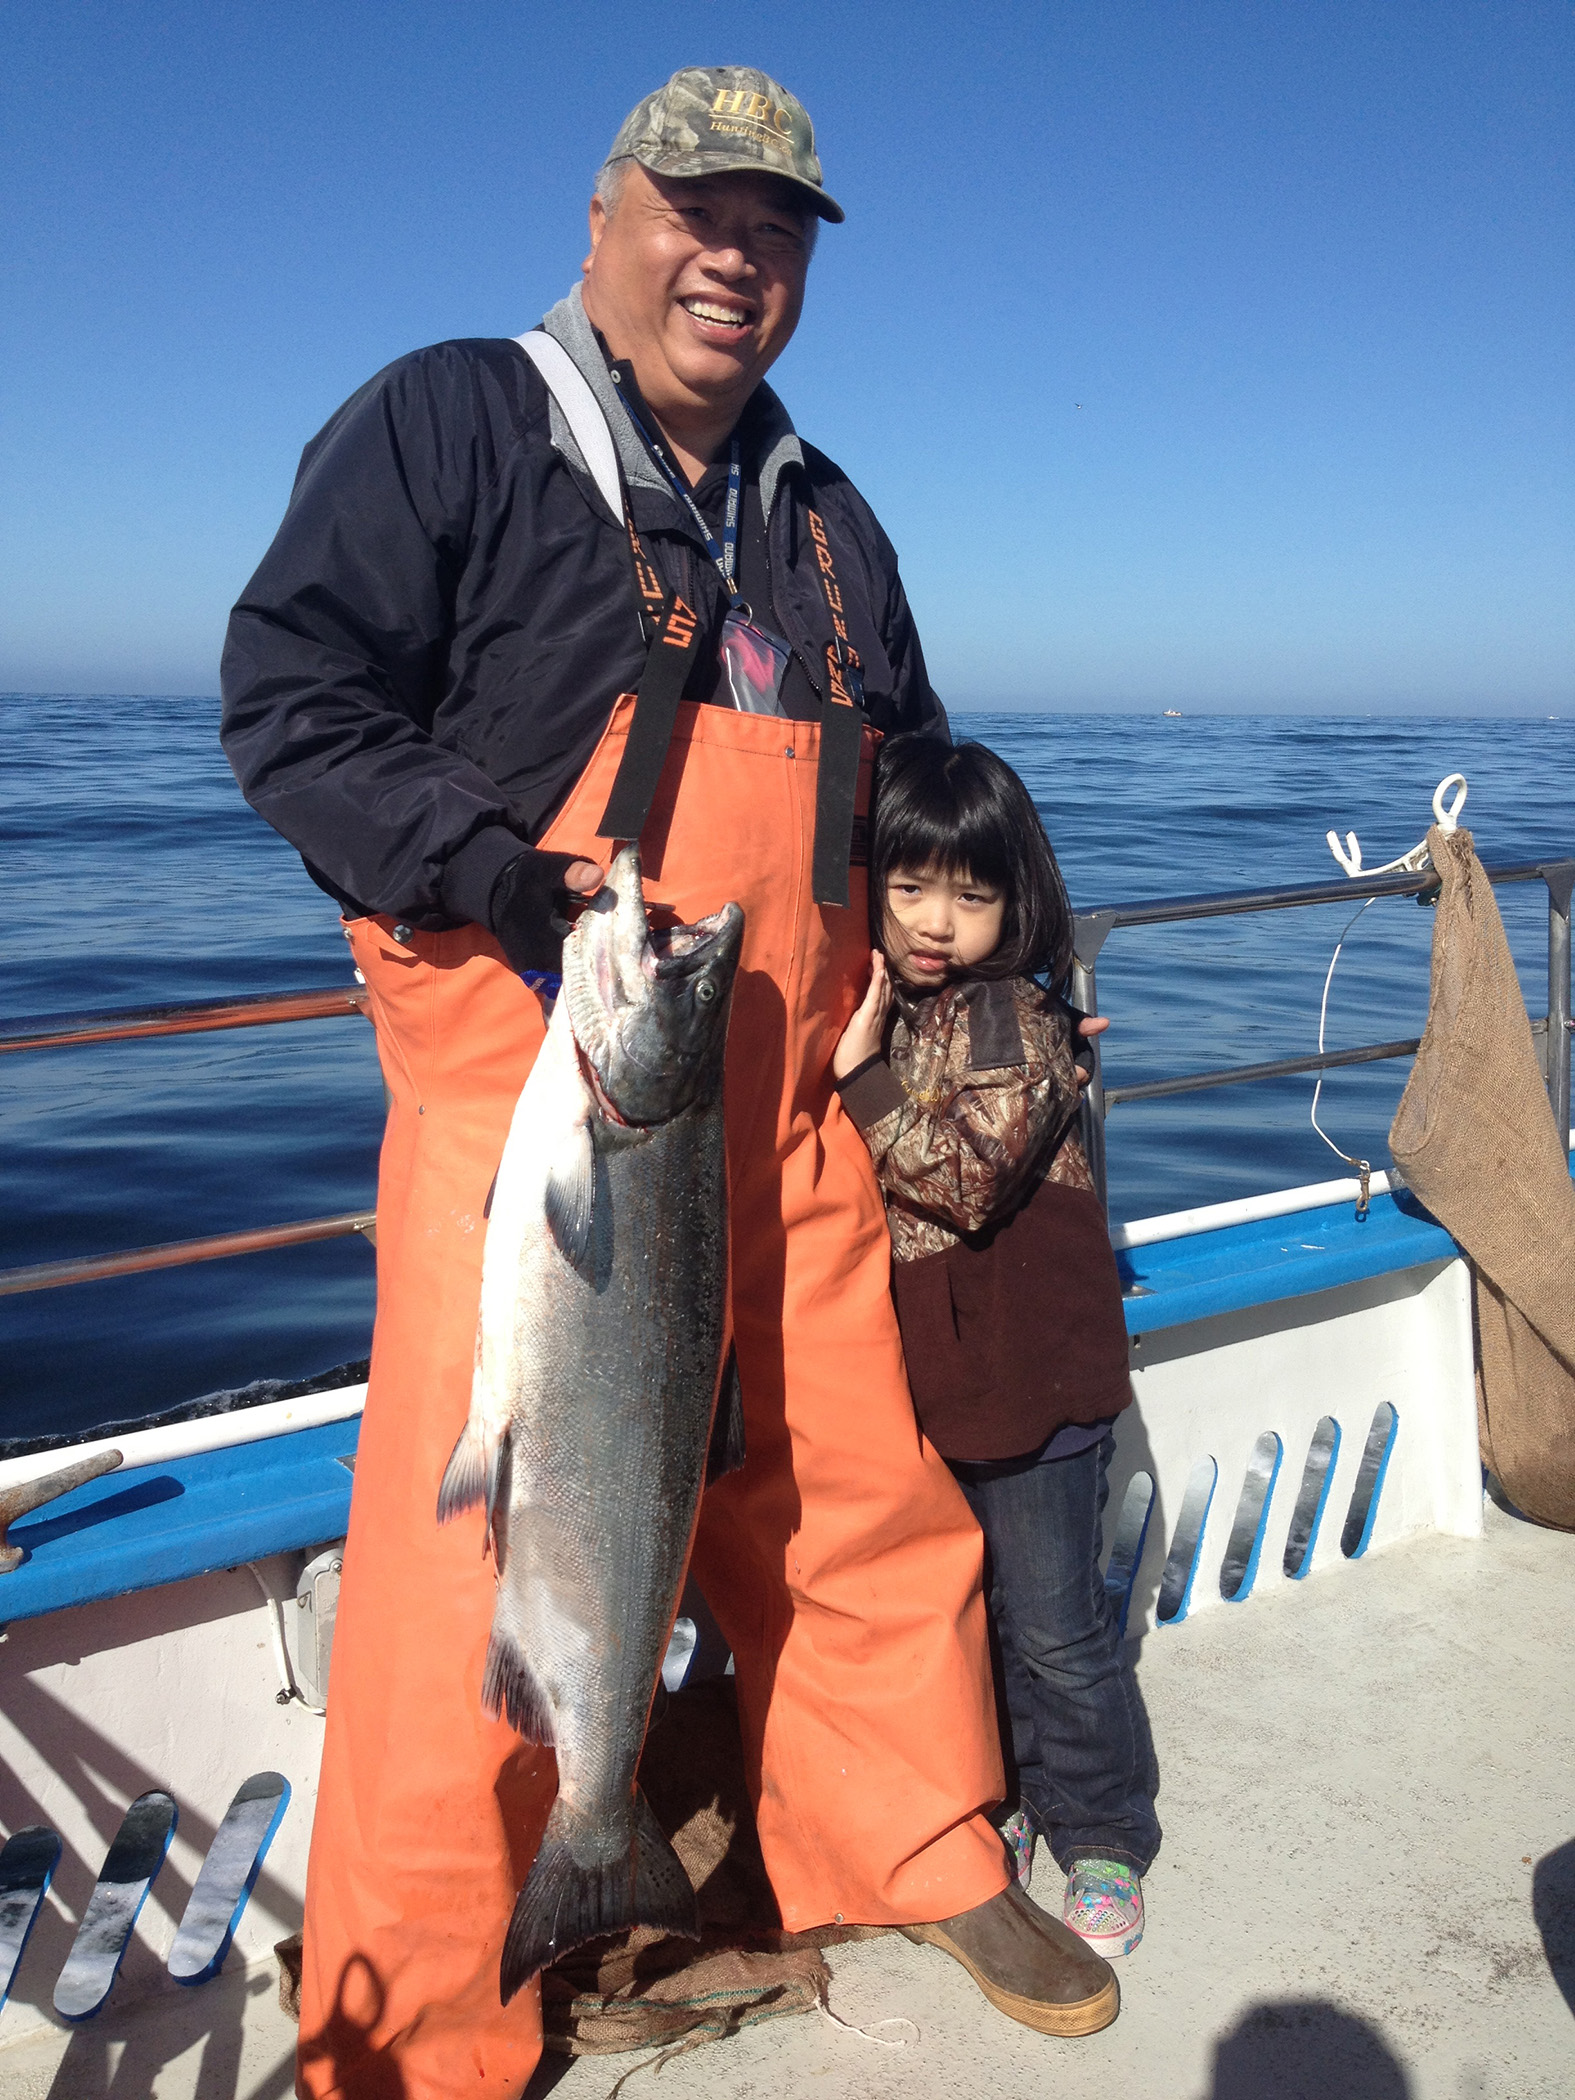 commercial fishing gear | california outdoors q and a, Reel Combo